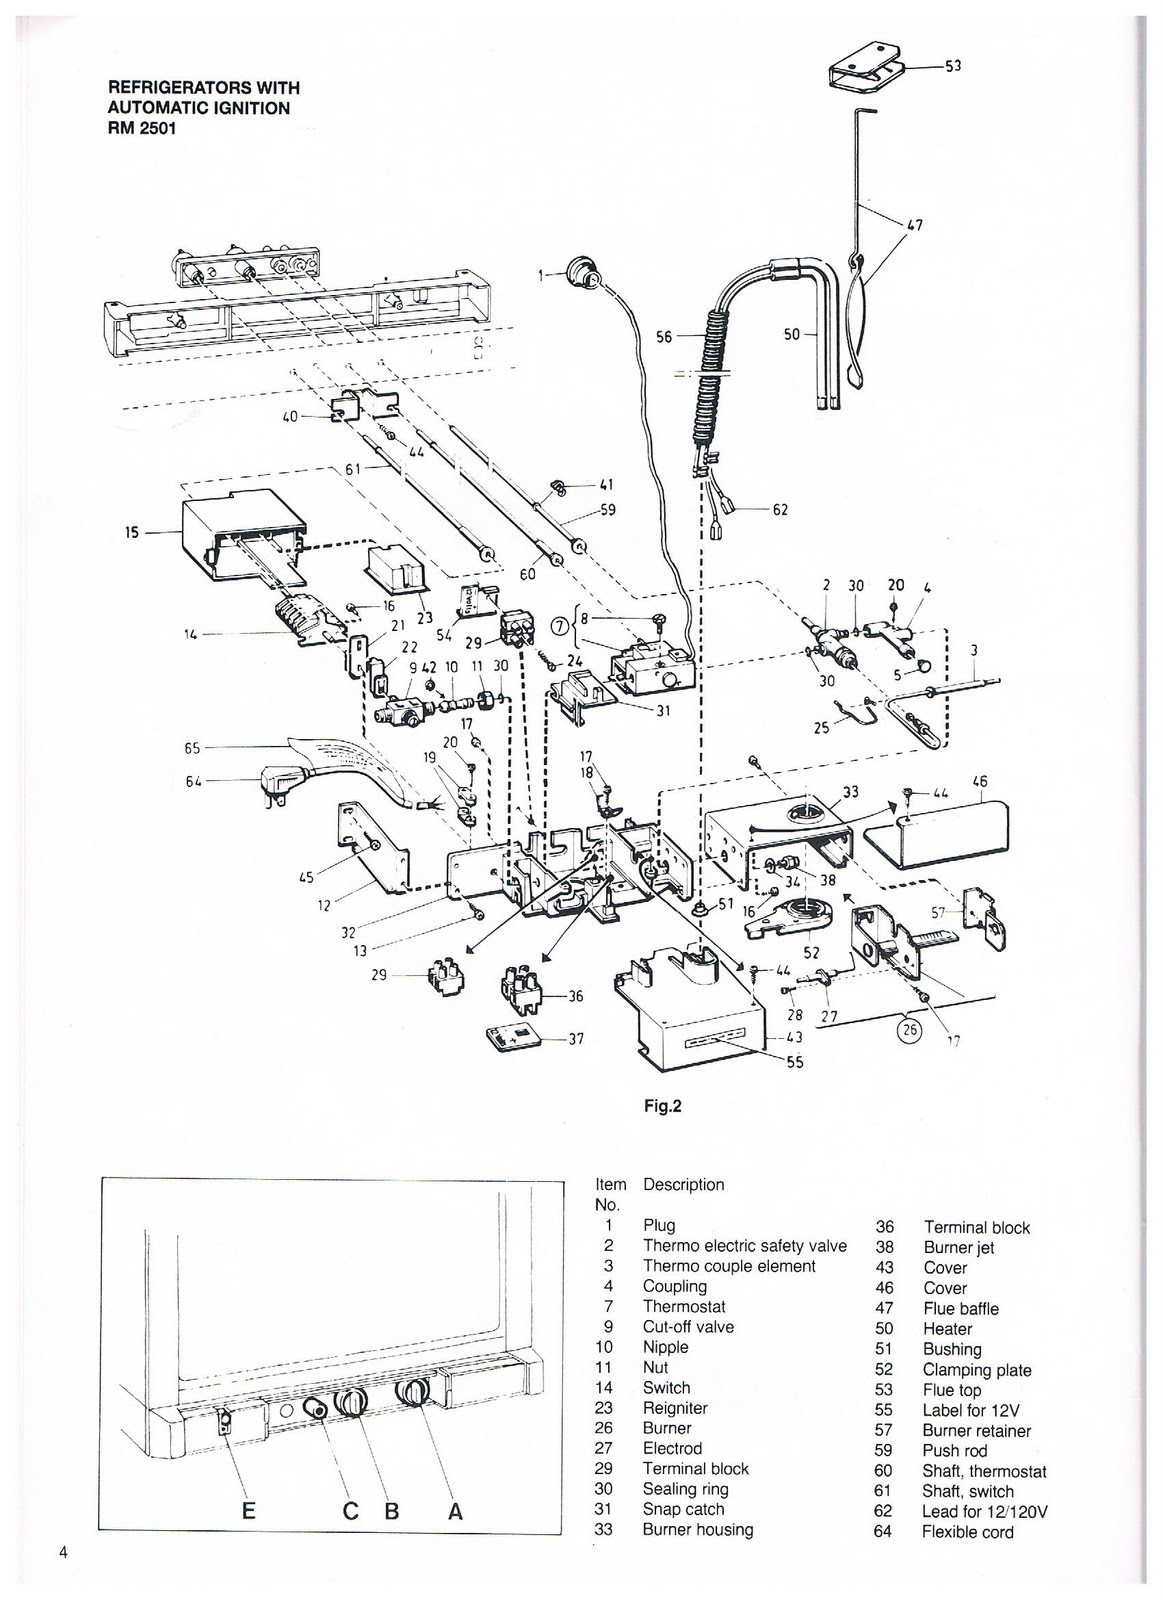 1983 Jayco Wiring Diagram Guide And Troubleshooting Of Diagrams Library Rh 95 Skriptoase De 5th Wheel Pop